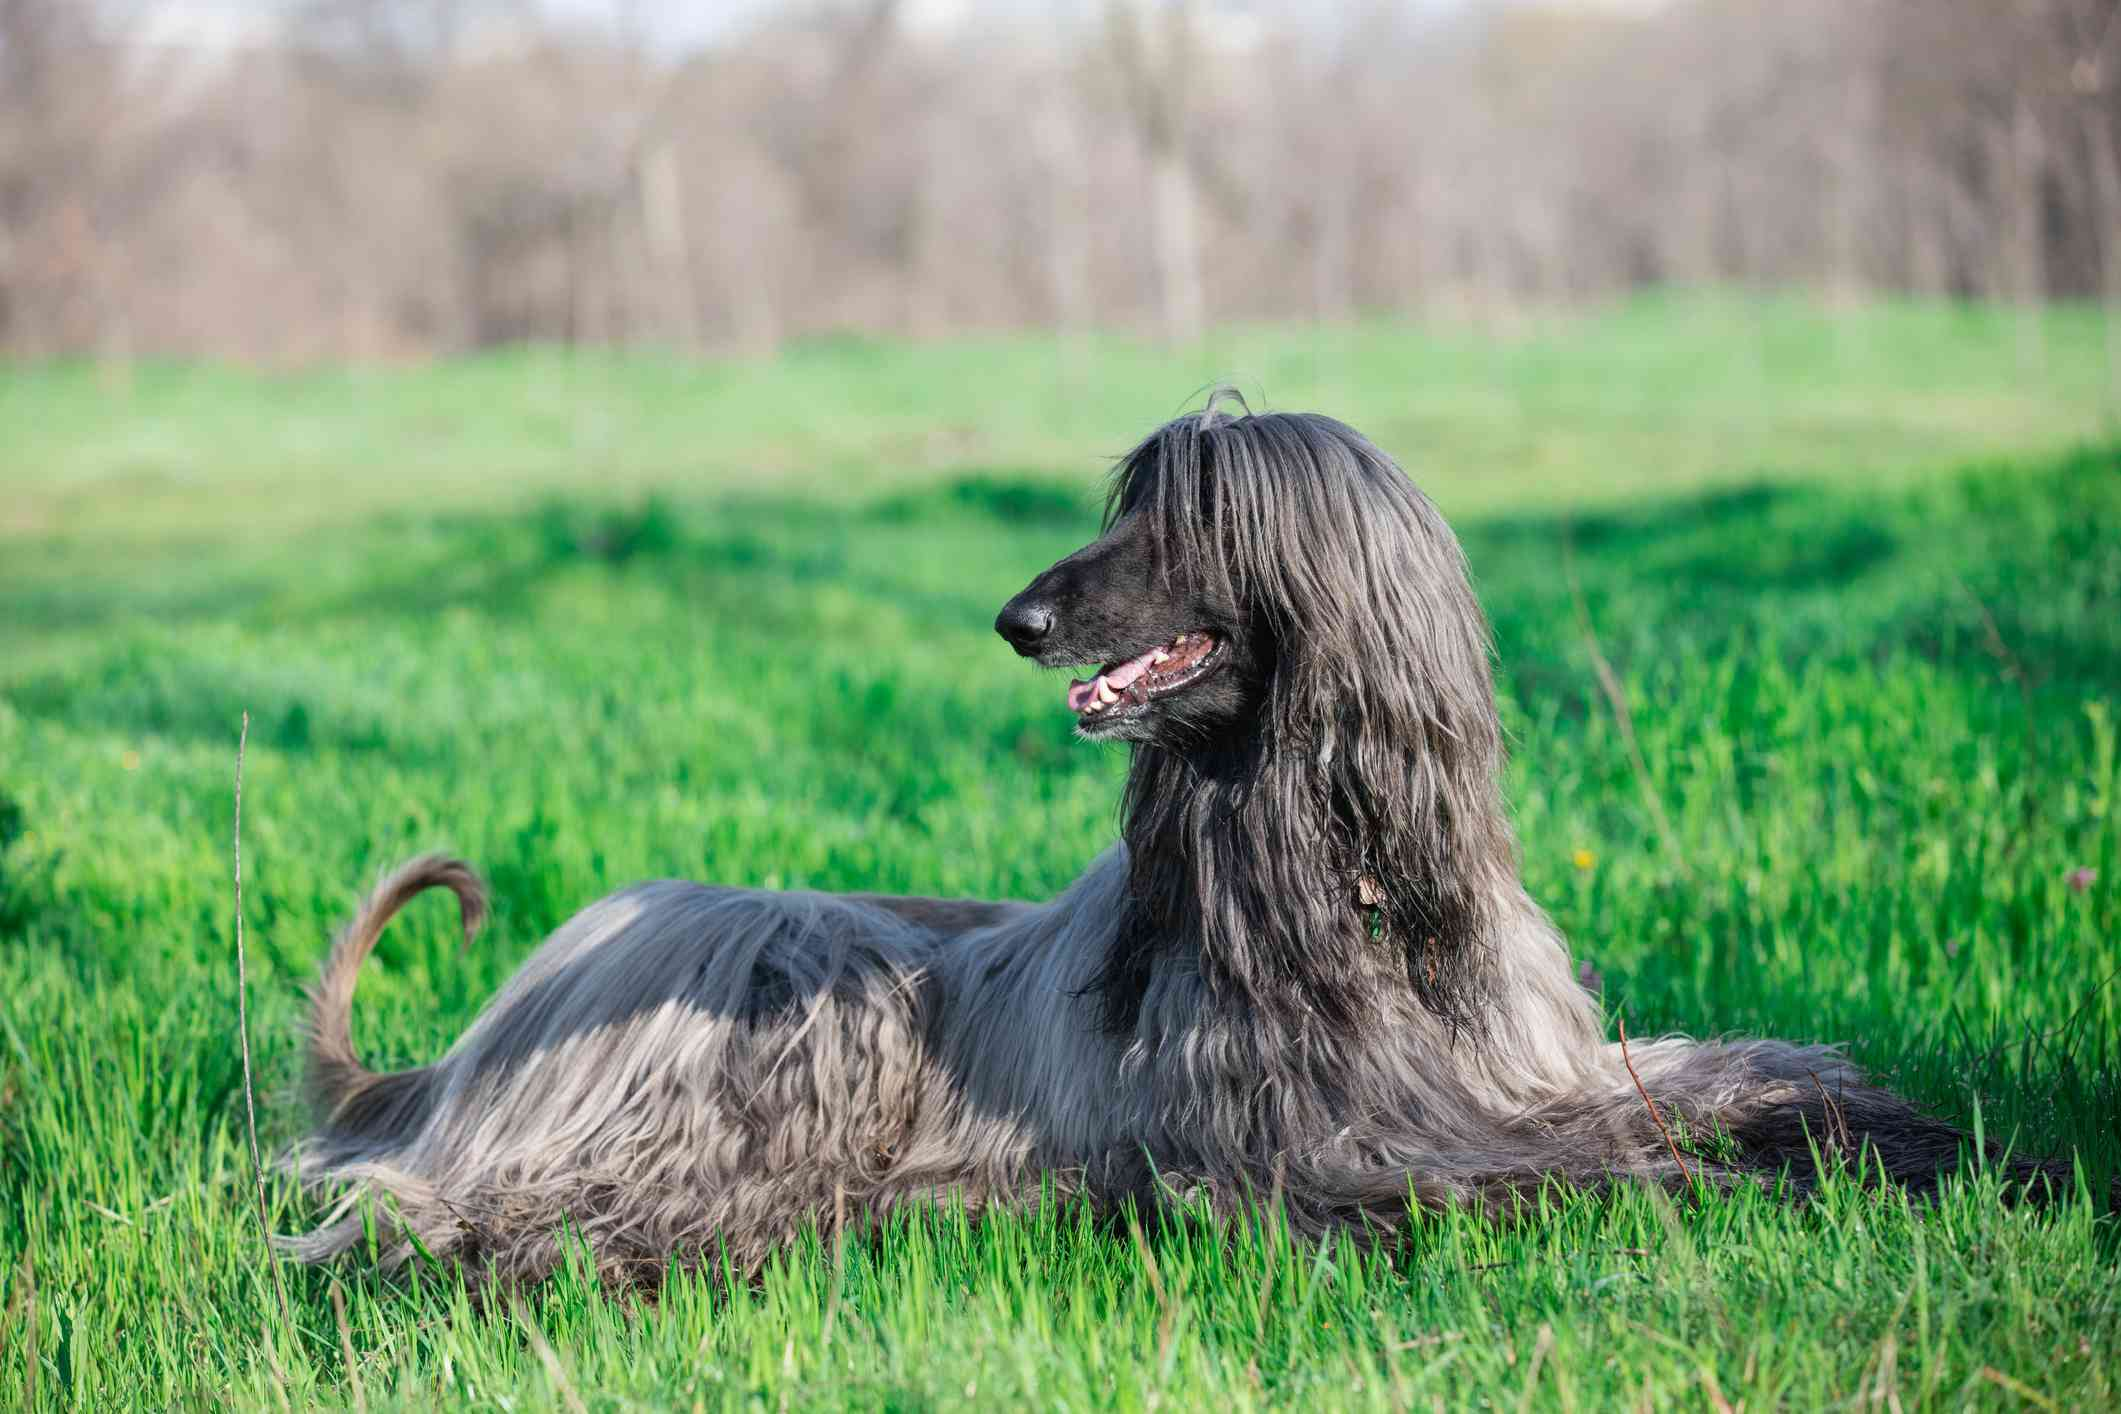 A thin and tall dog with long hair laying down in the grass.